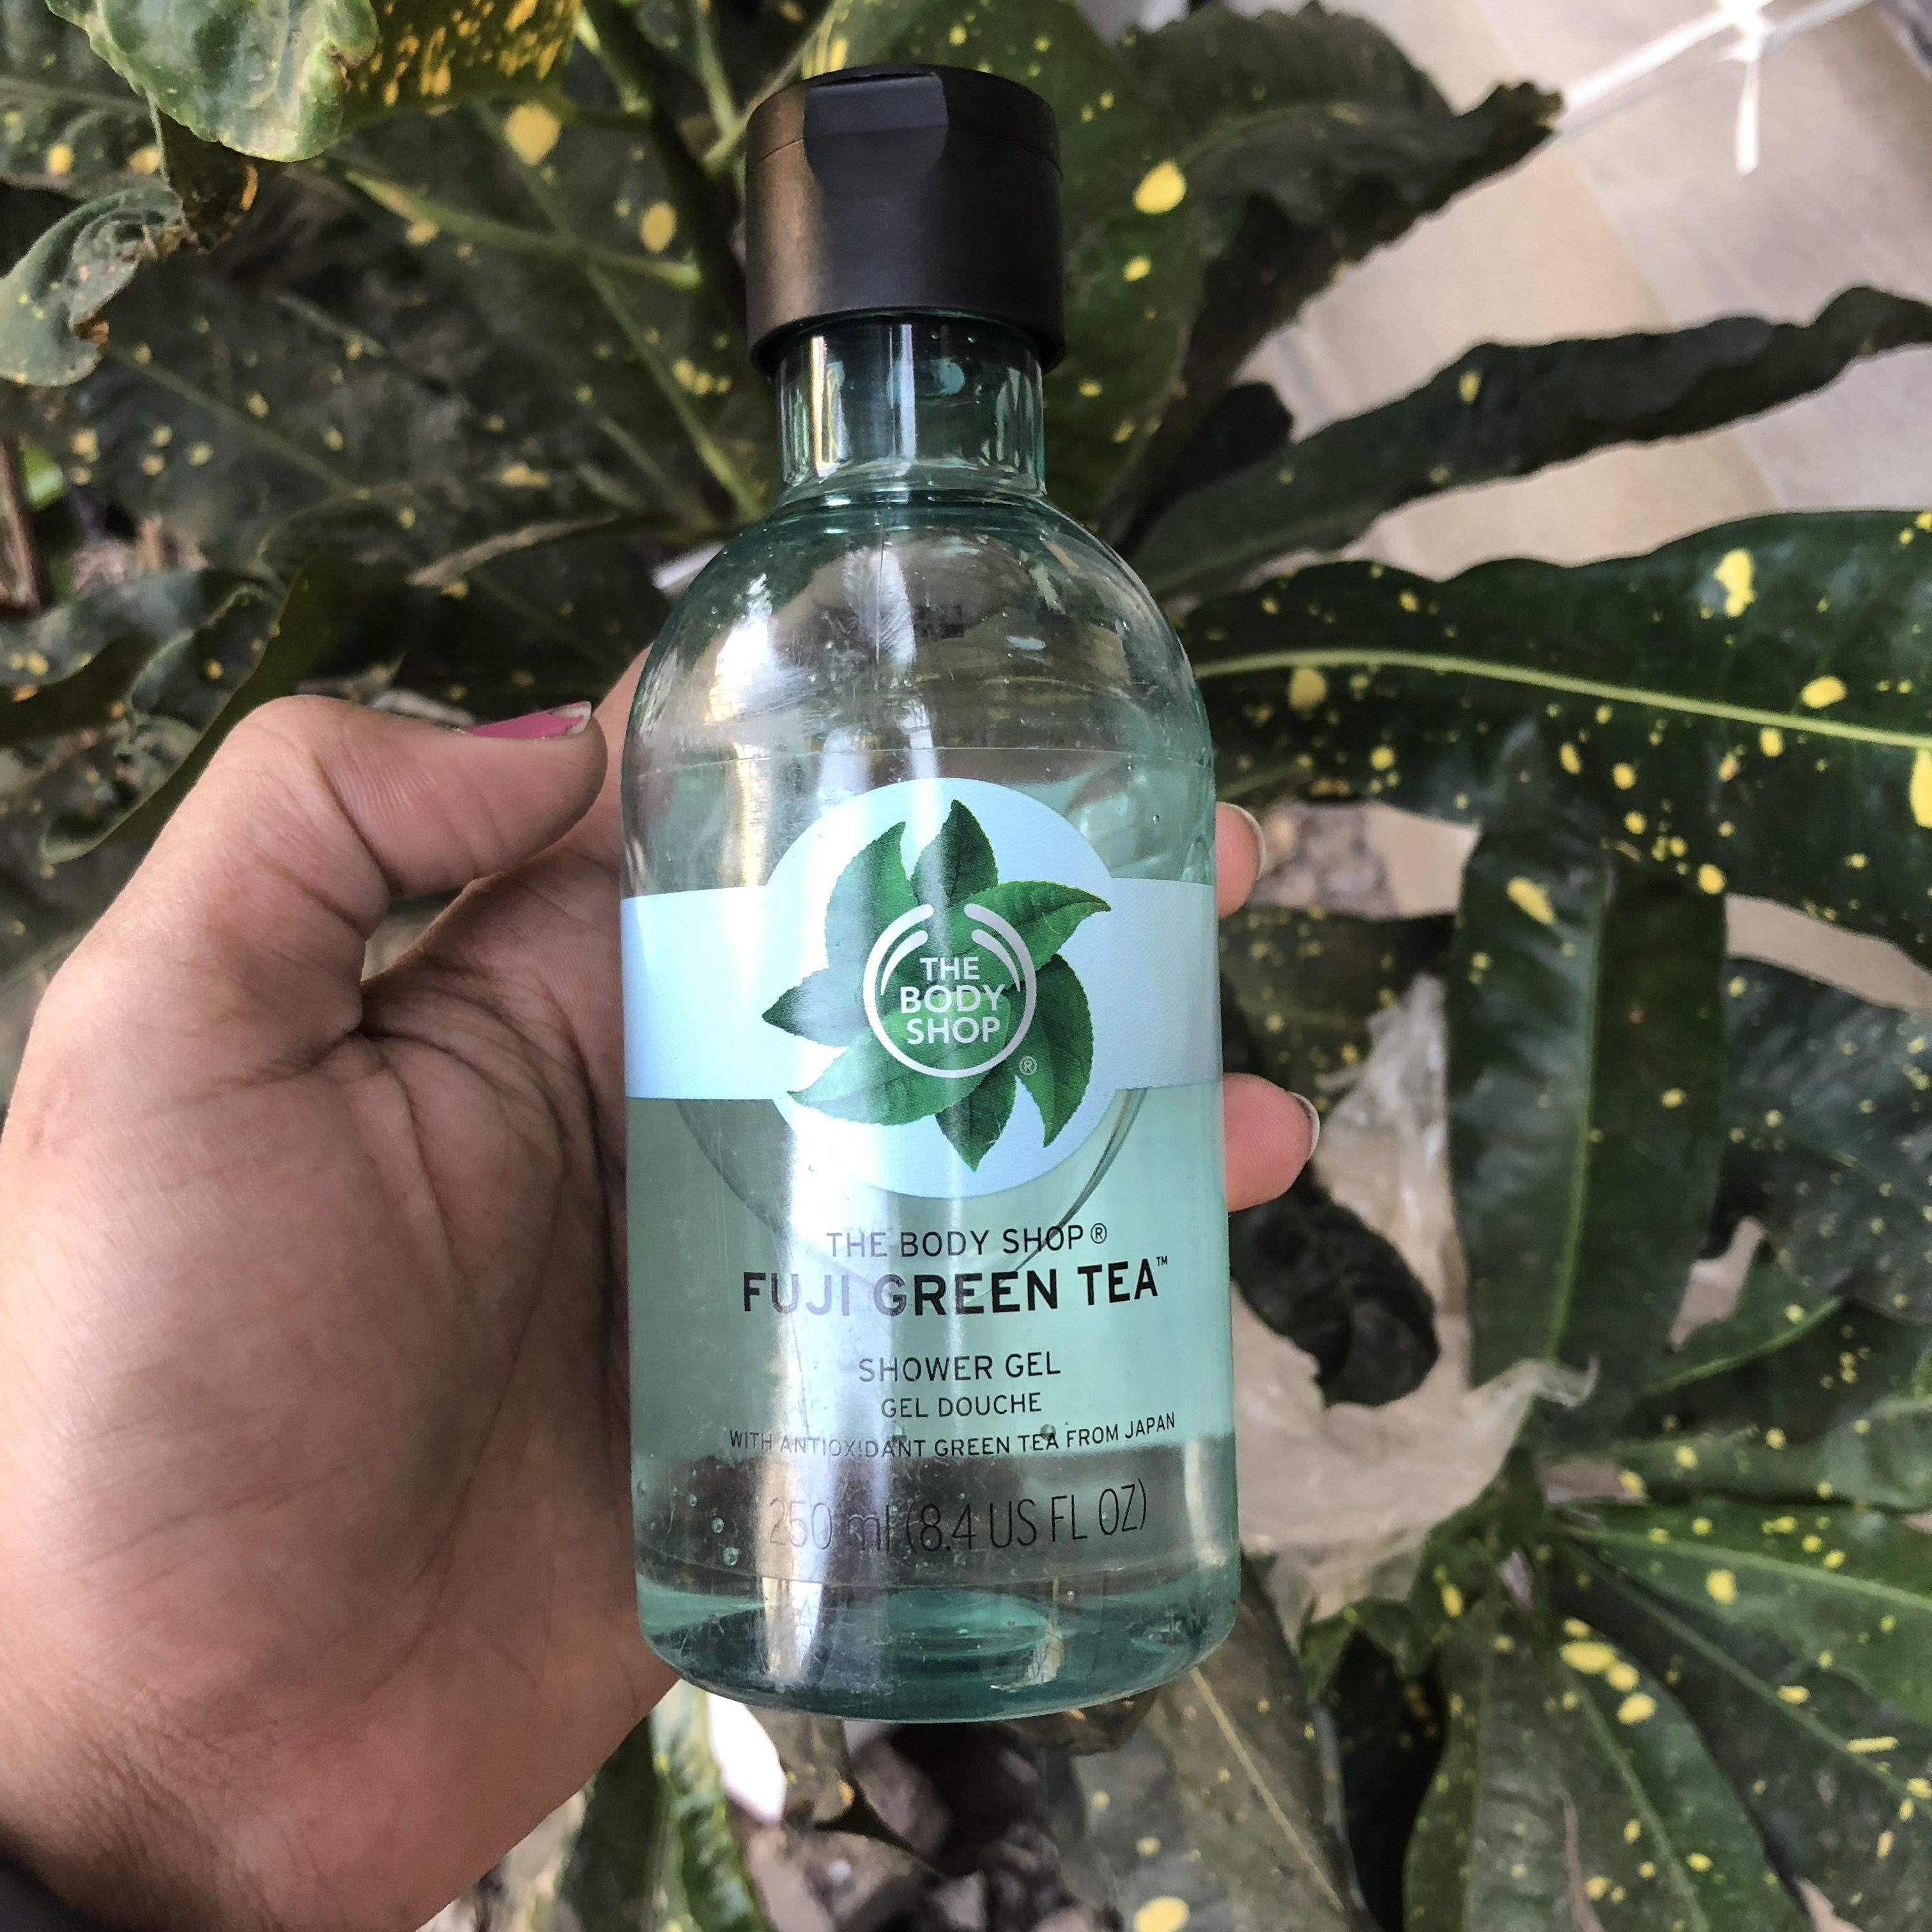 The Body Shop Fuji Green Tea Shower Gel Featured Image